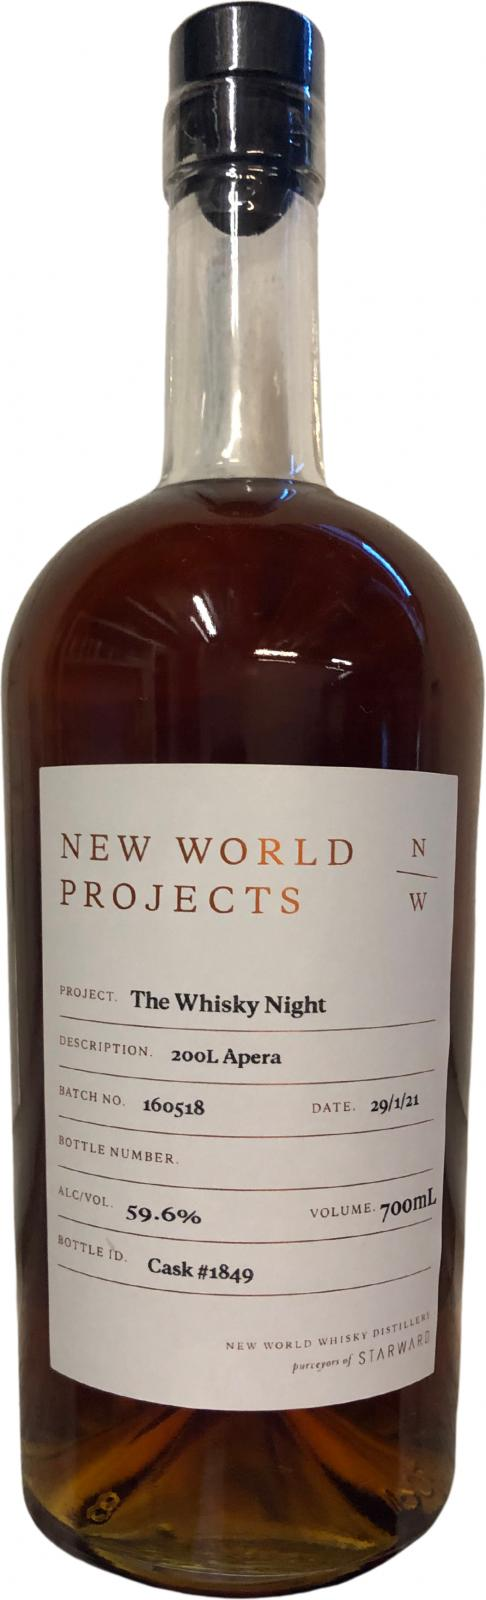 New World Projects The Whisky Night Apera